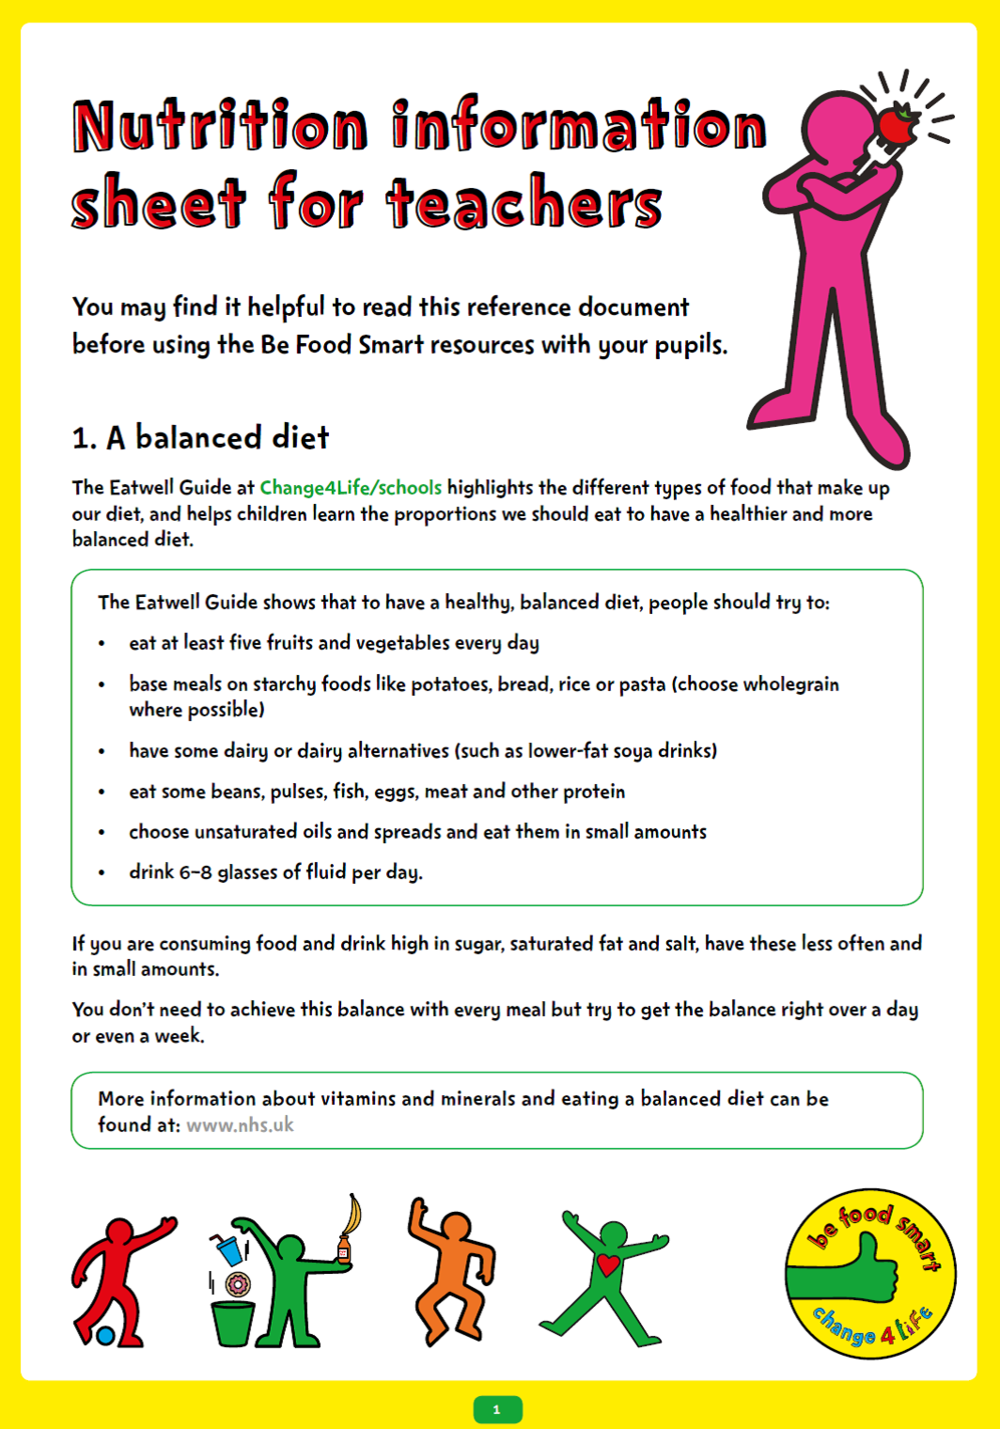 C4L - BFS - KS2 Nutrition Teacher Sheet